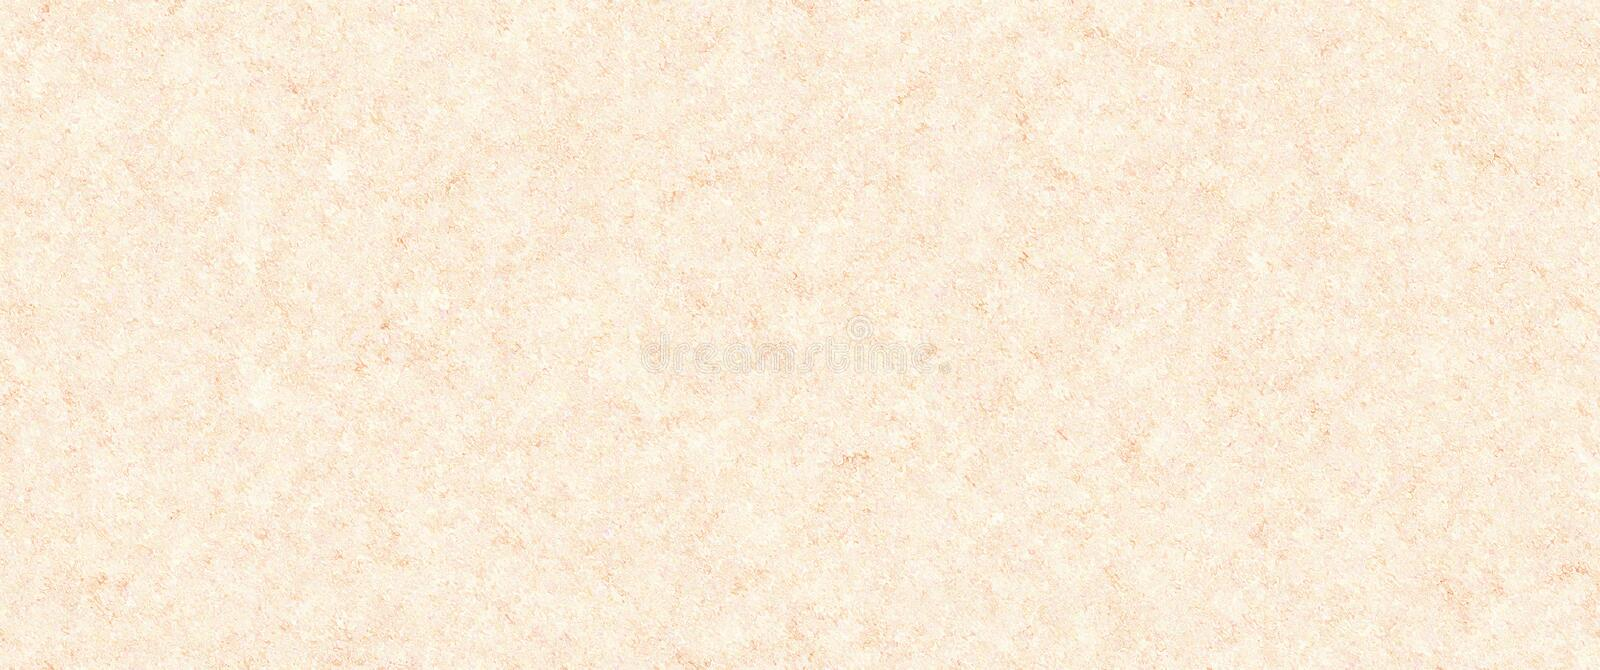 Abstract background, imitation of a stone pattern, blur, repeating pattern royalty free stock photography